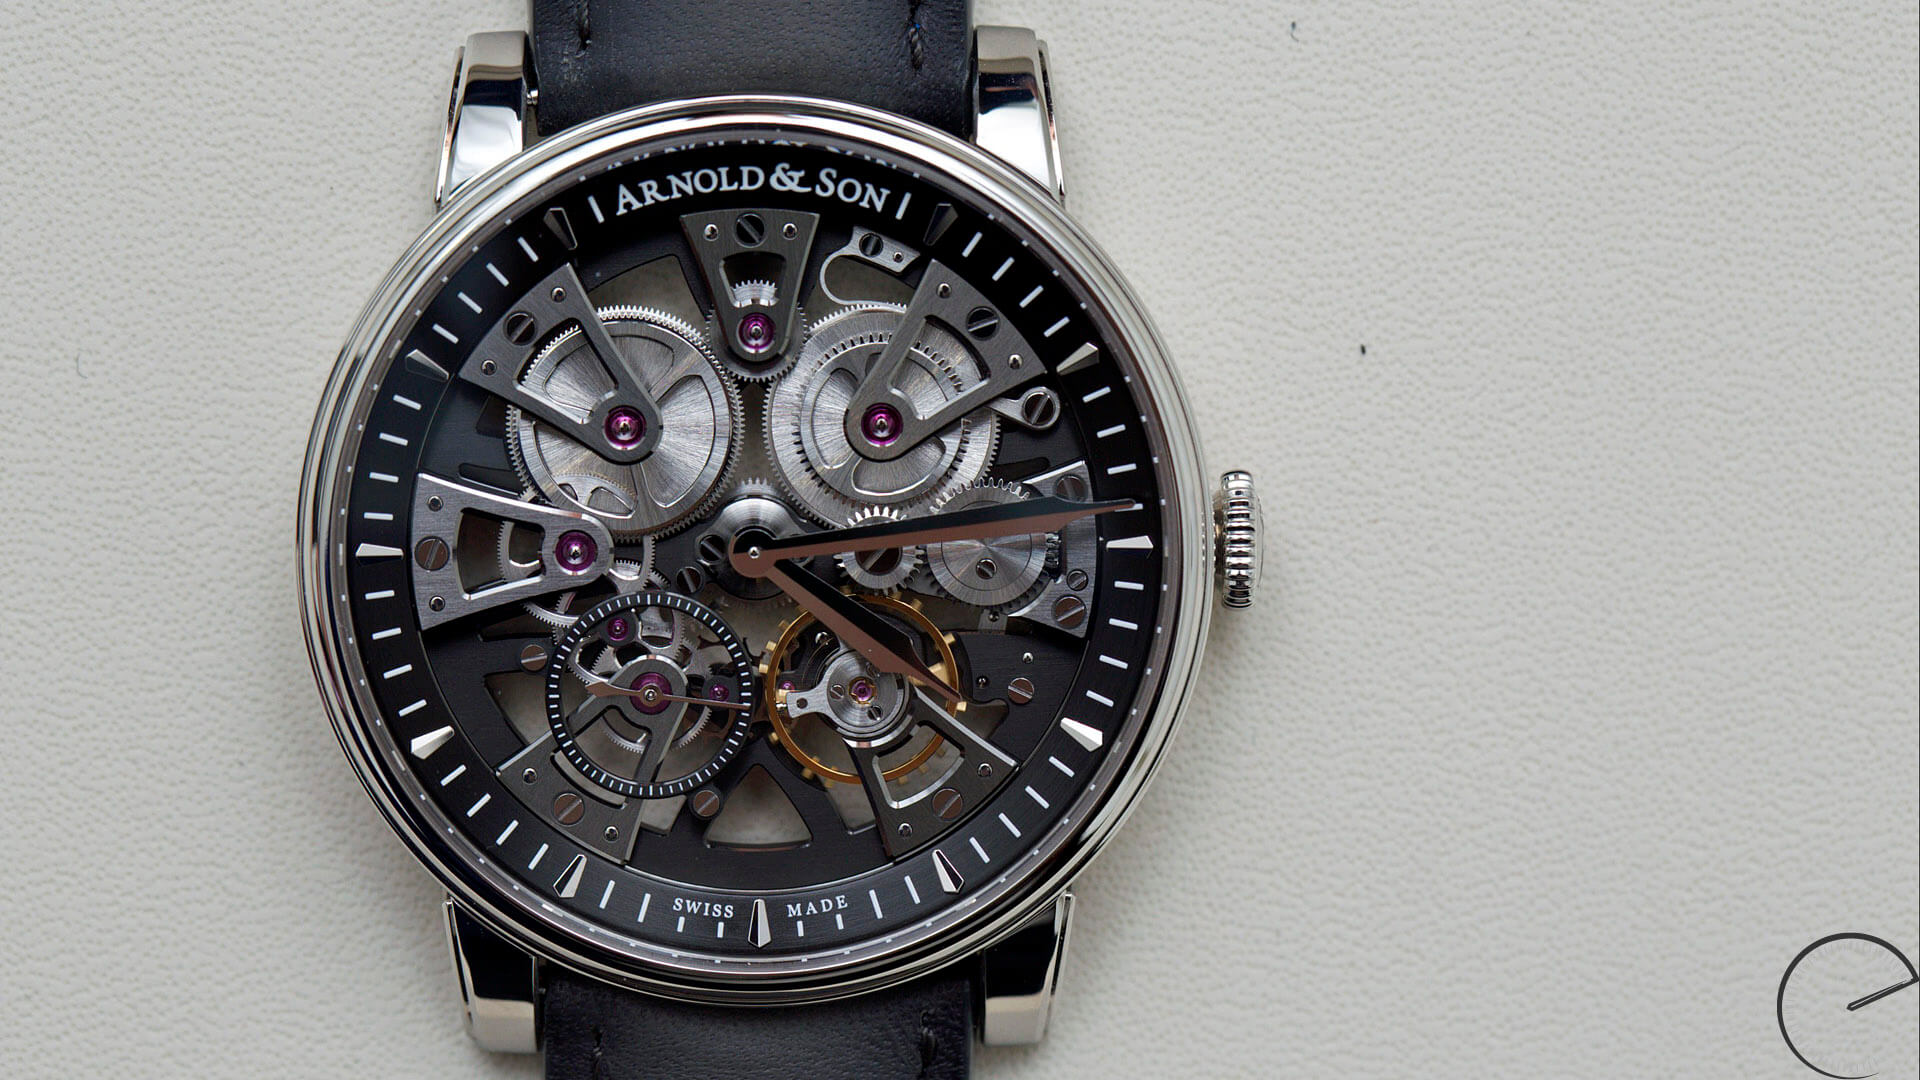 Arnold_and_Son_Nebula_dial - ESCAPEMENT magazine - watch reviews by Angus Davies